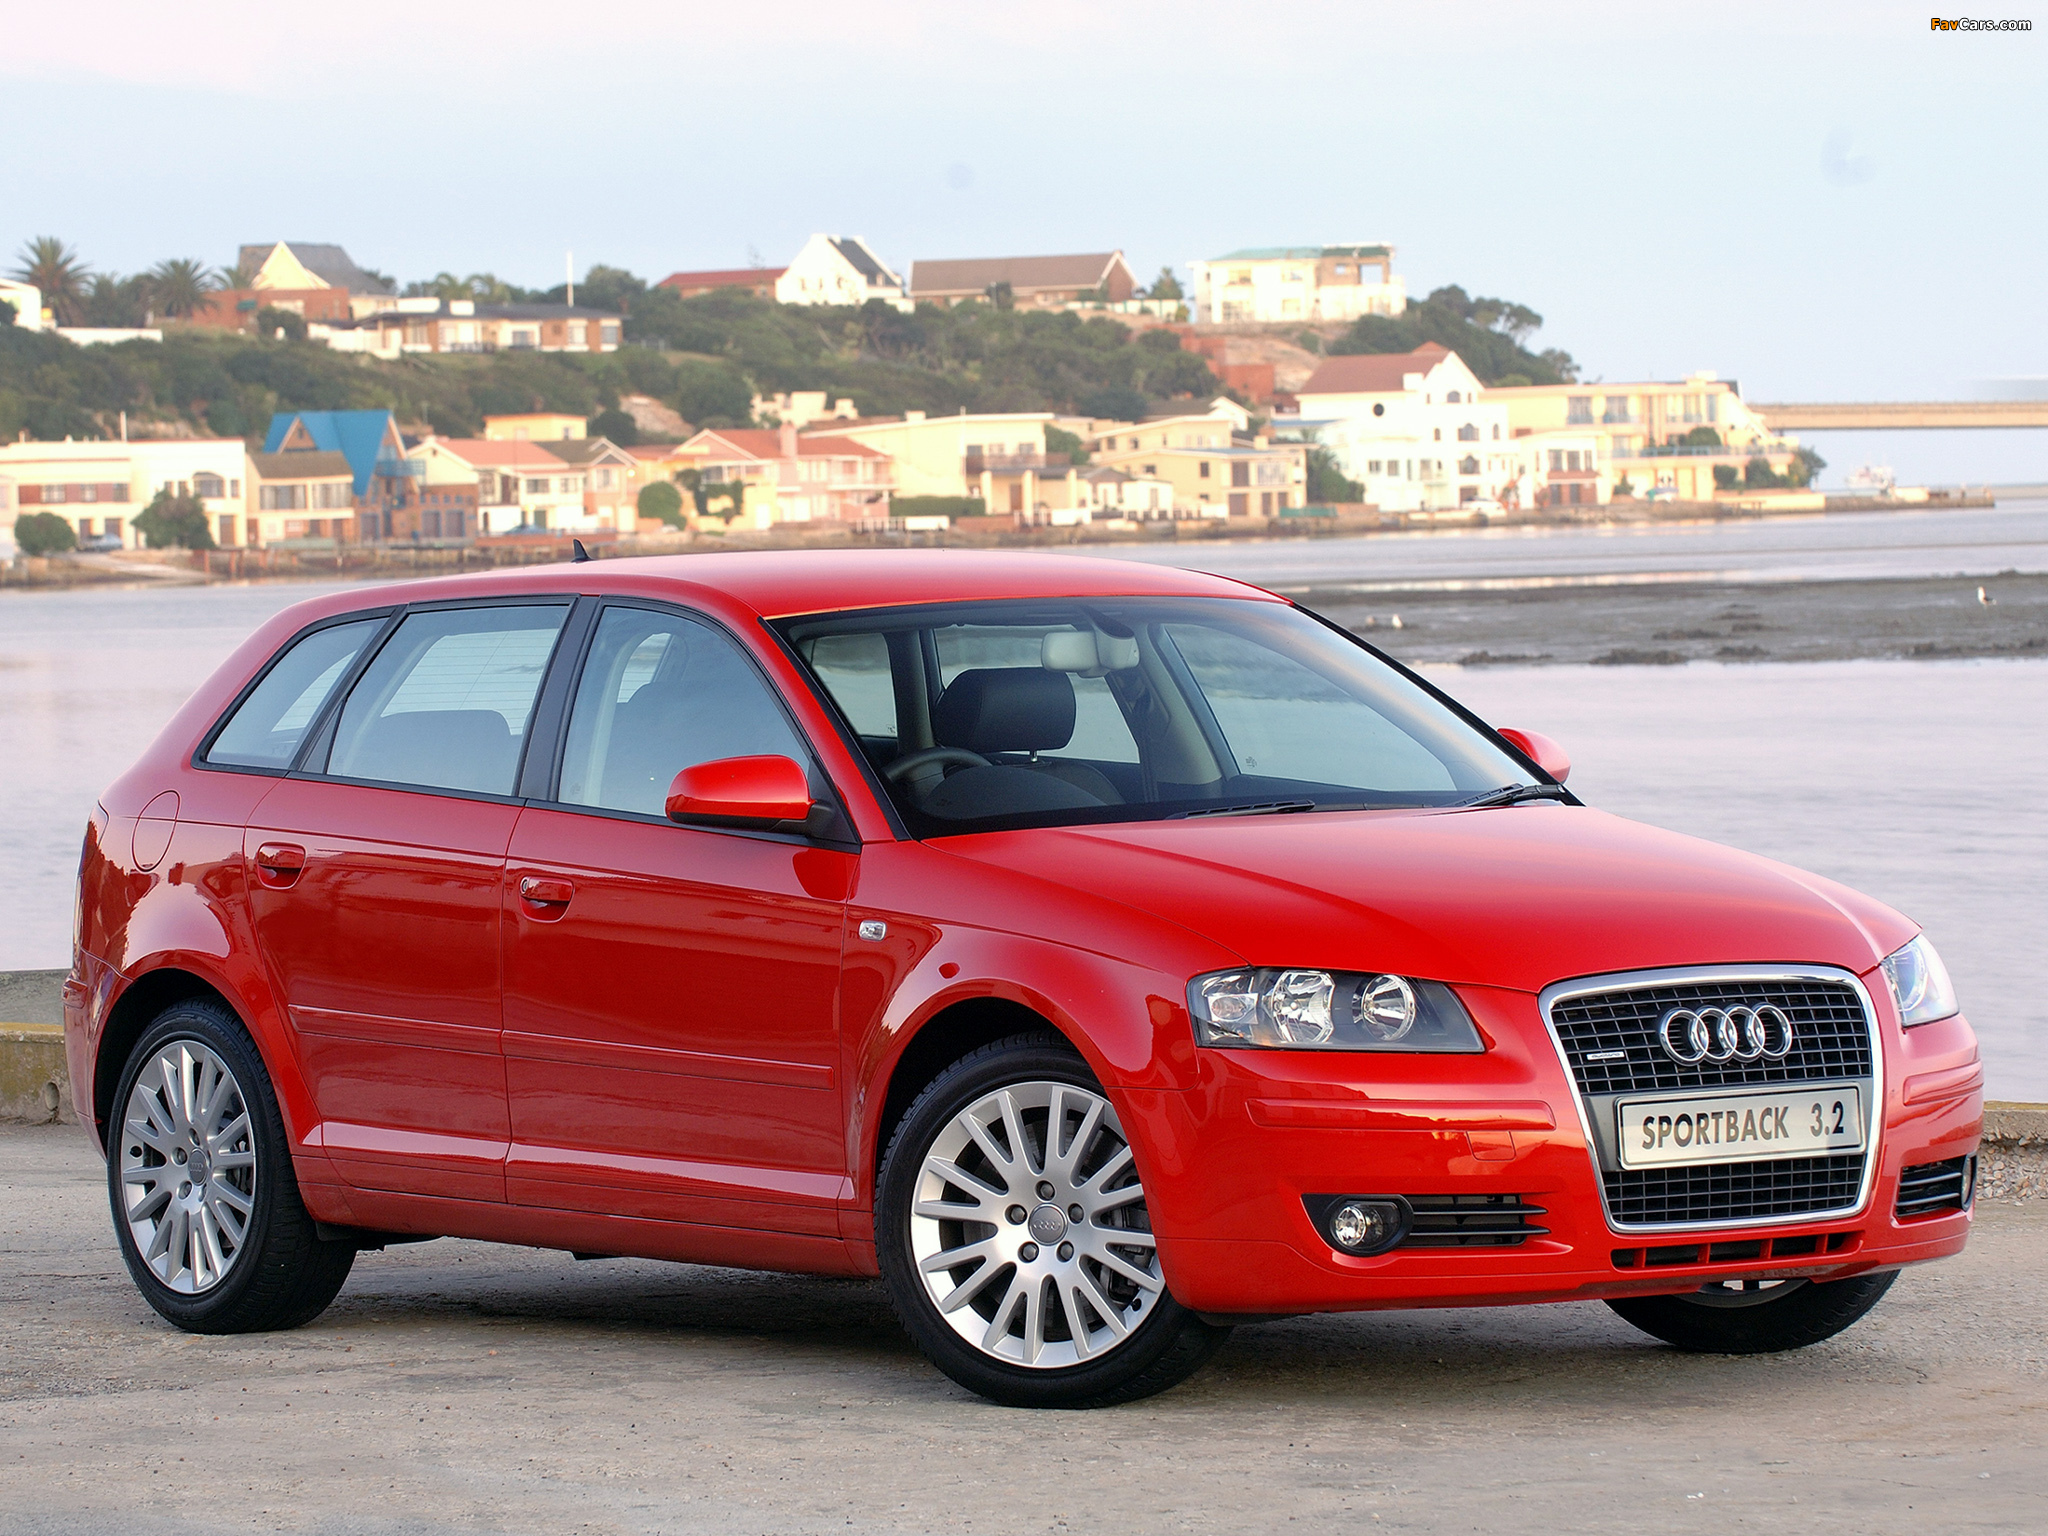 Photos Of Audi A3 Sportback 3 2 Quattro Za Spec 8pa 2005